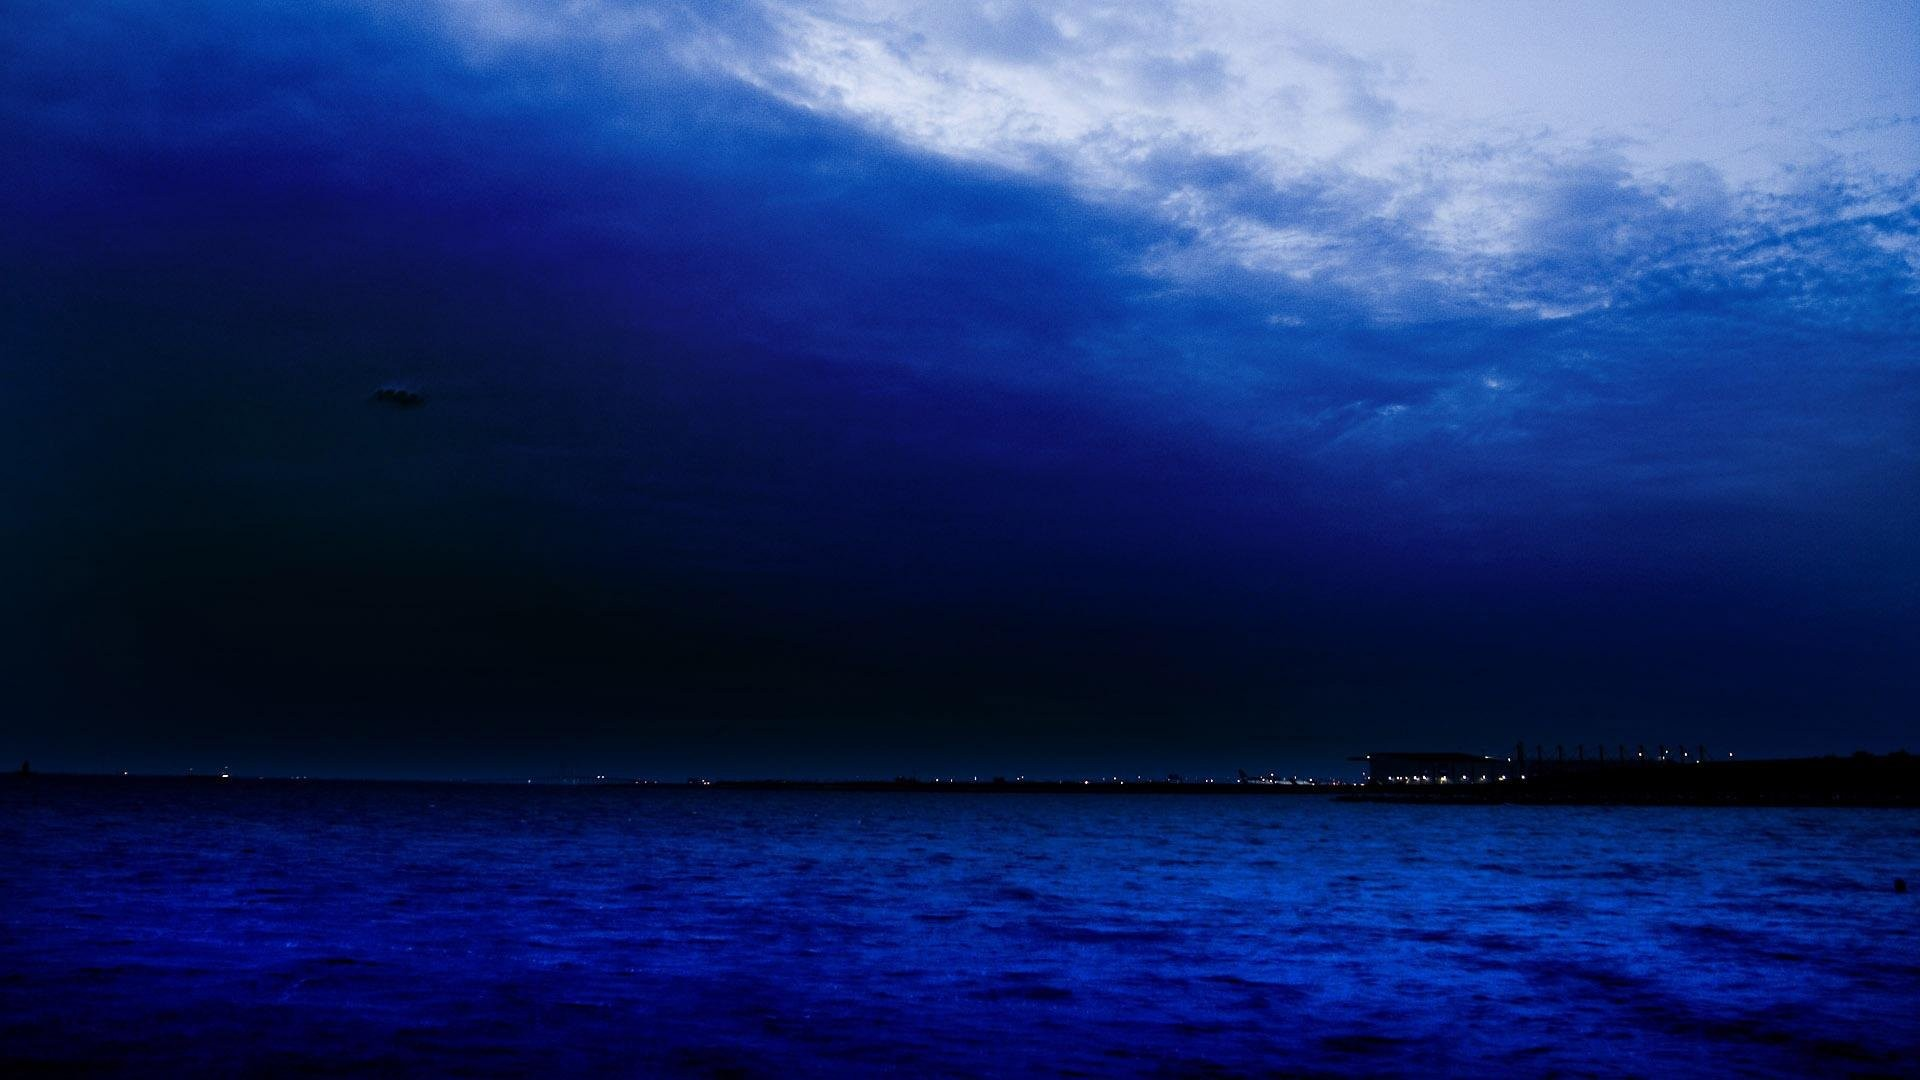 Nature, Free, Sea, Ocean Mobile Wallpapers,android, - Dark Blue Sea Sky , HD Wallpaper & Backgrounds